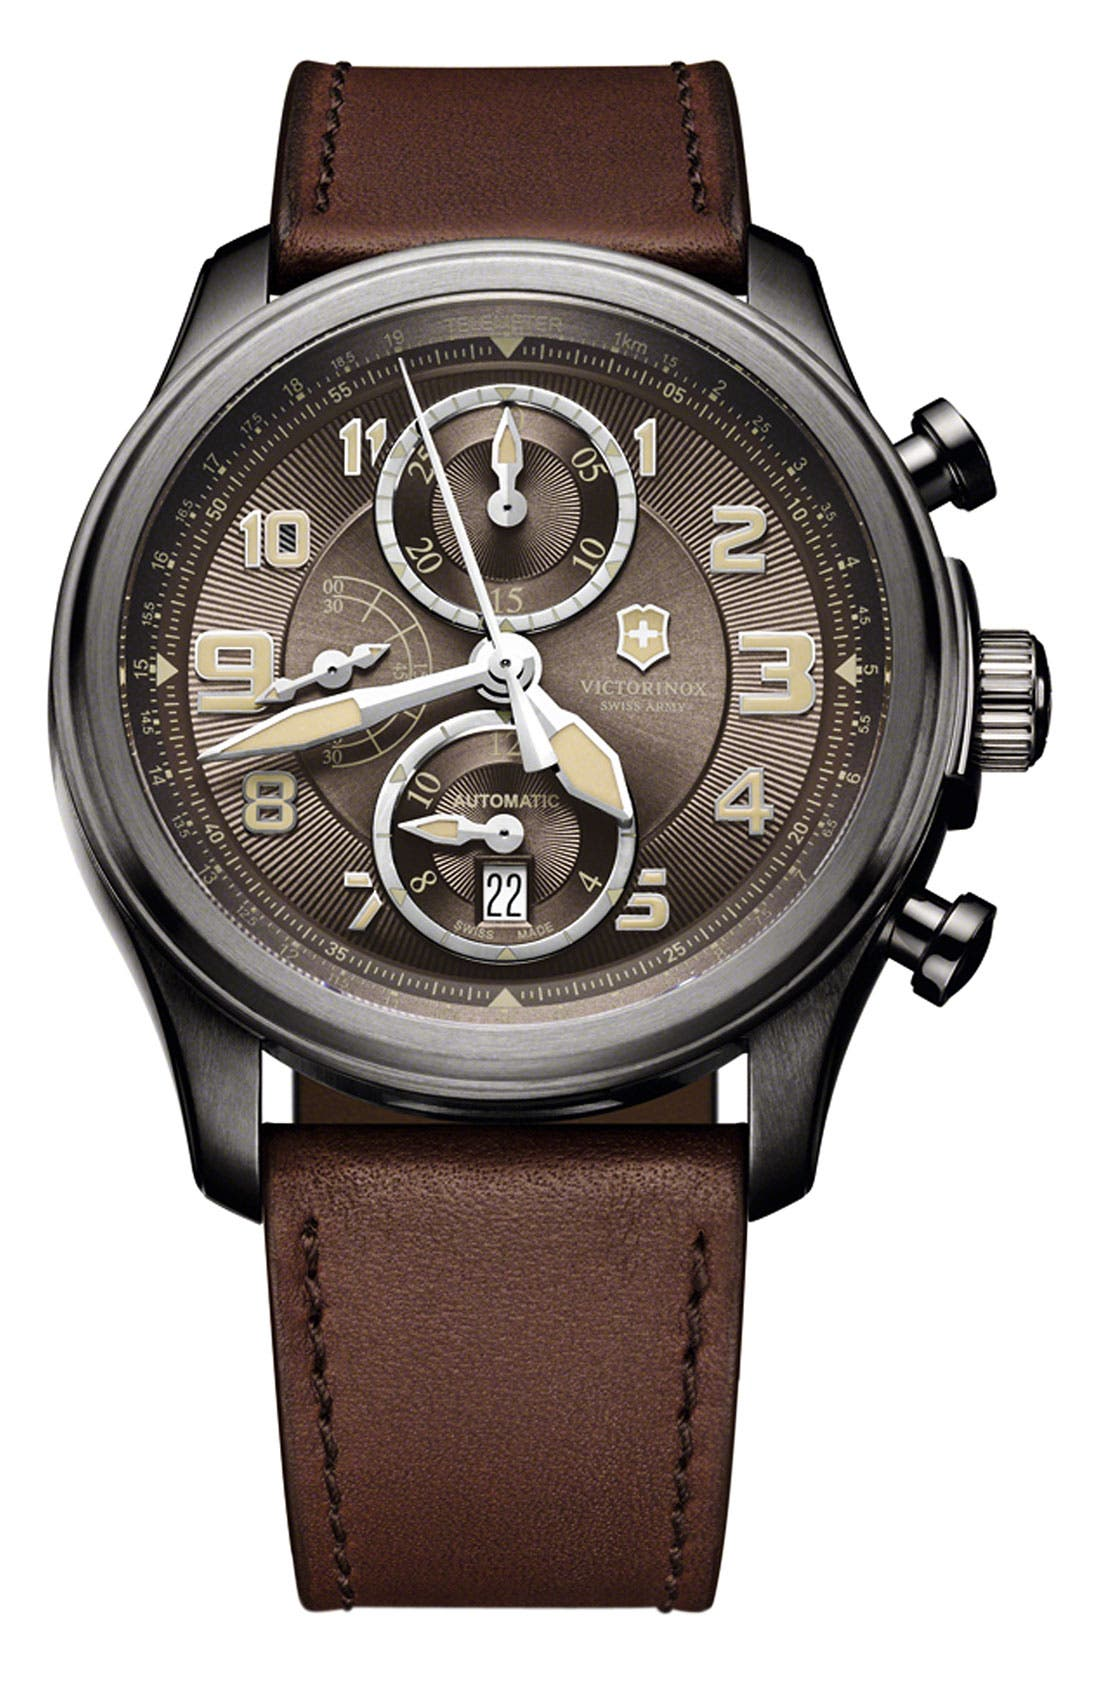 Main Image - Victorinox Swiss Army® 'Infantry Vintage' Automatic Chronograph Watch